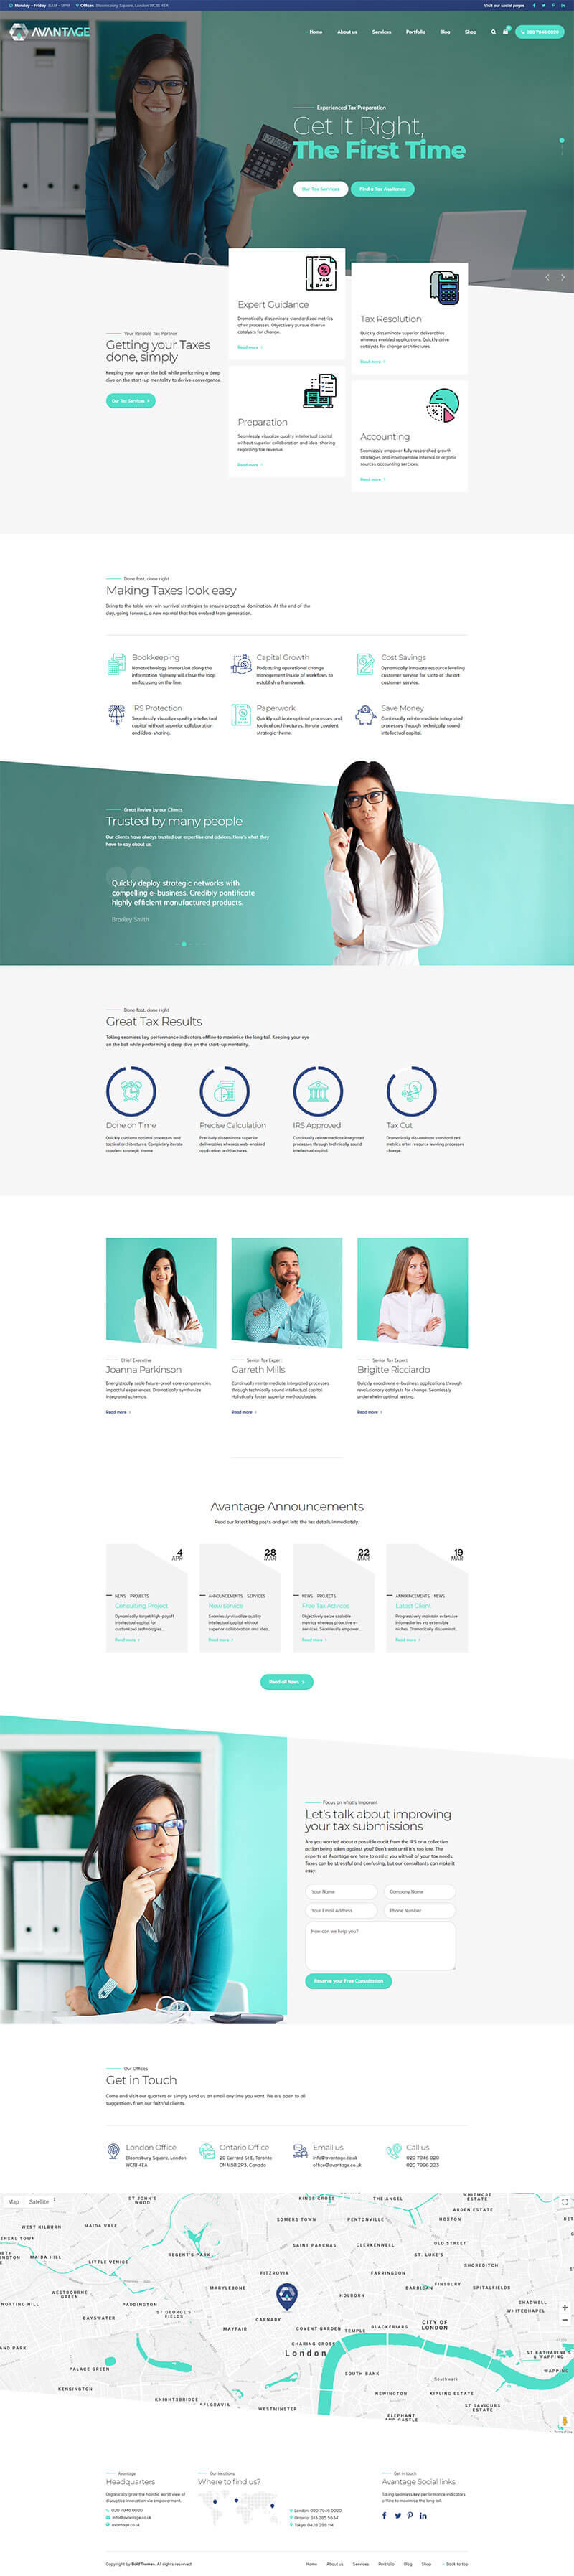 http://avantage.bold-themes.com/wp-content/uploads/2019/05/demo-05-accountant.jpg